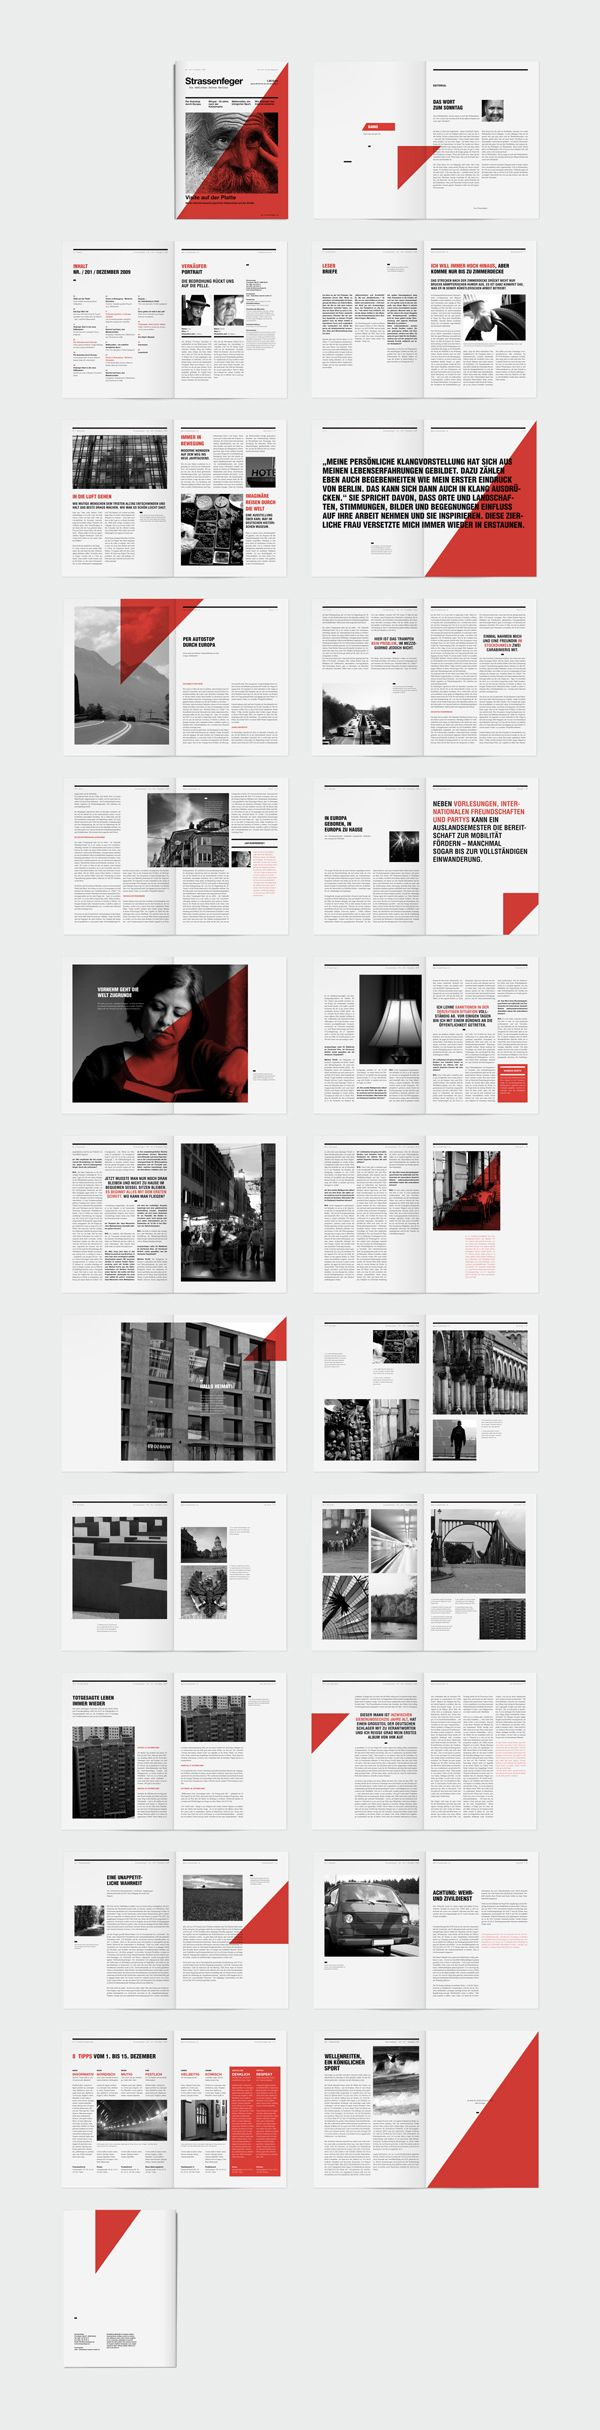 Visual identity concept / Strassenfeger by Rene Bieder, via Behance